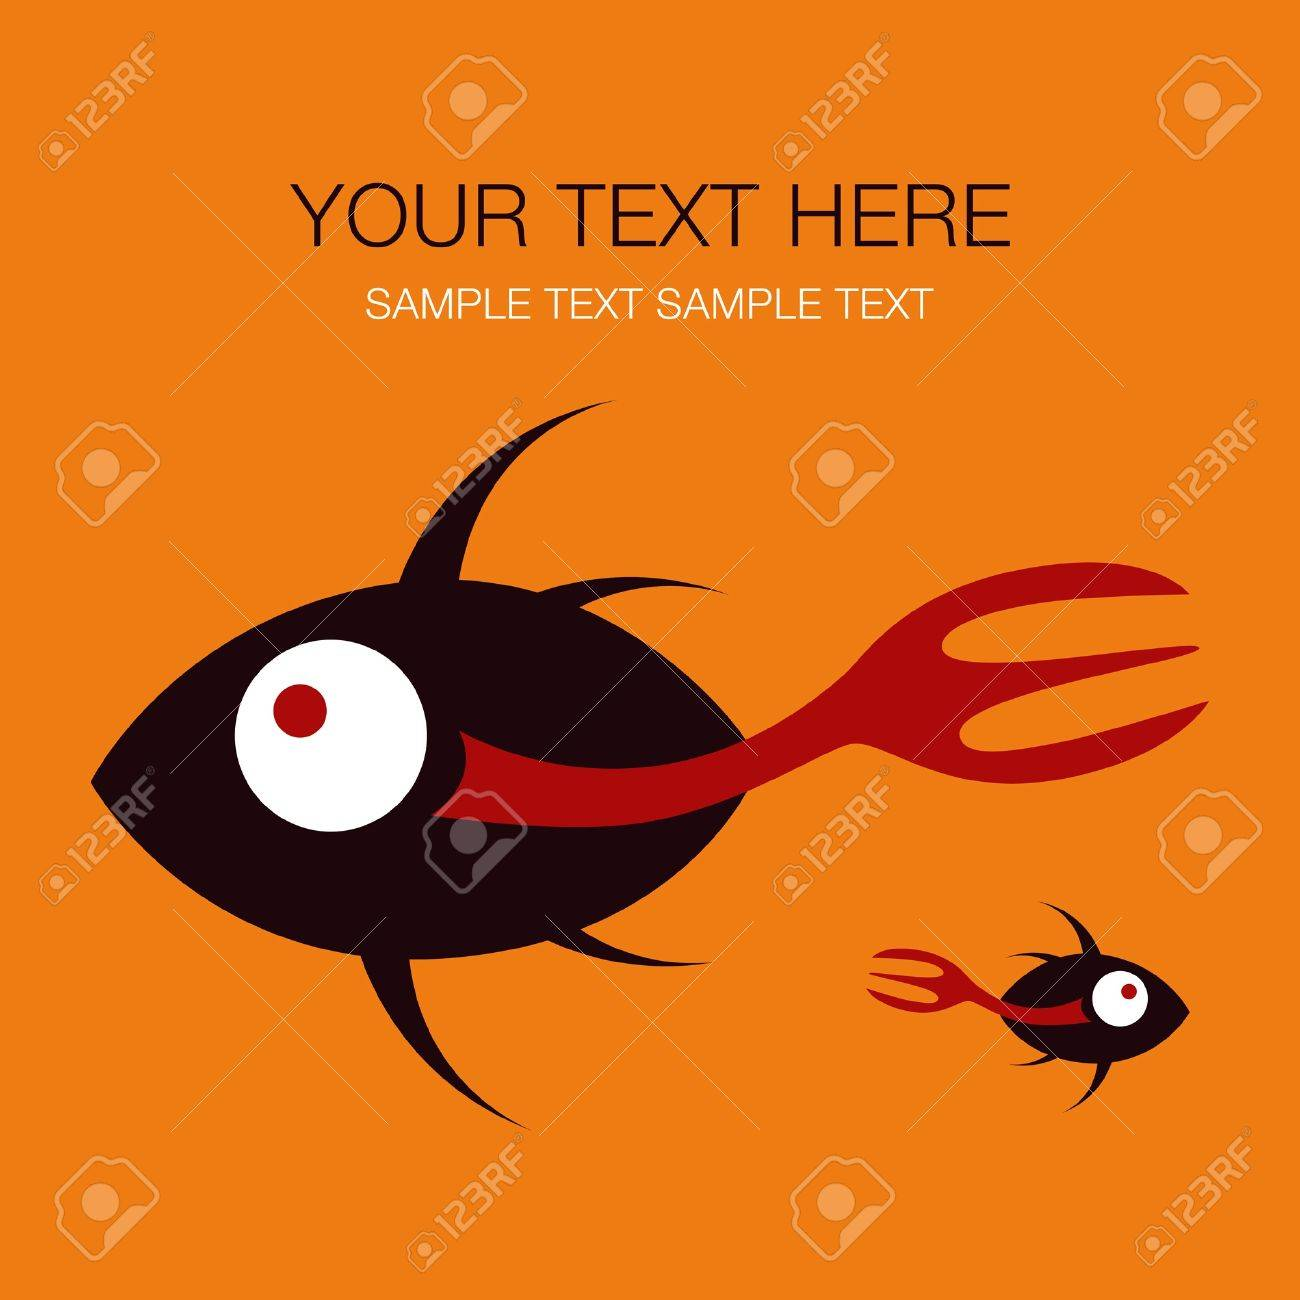 Fork tailed fish design with copy space . Stock Vector - 10799350